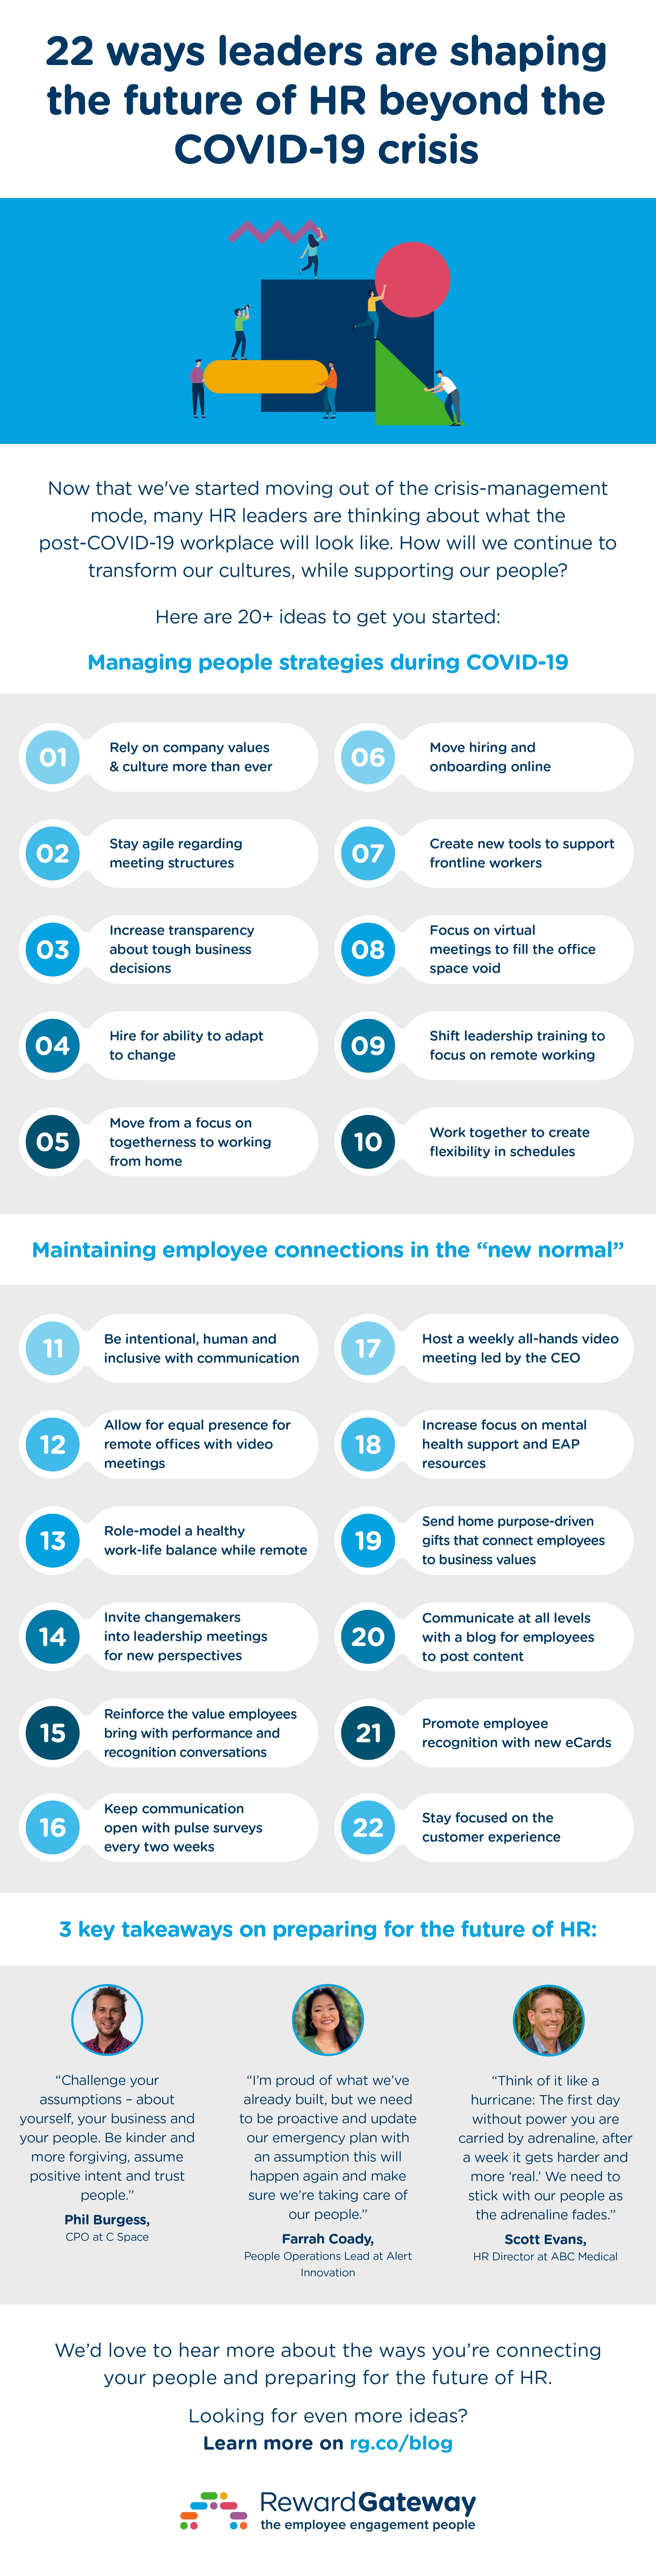 us-22-ways-leaders-shaping-future-of-hr